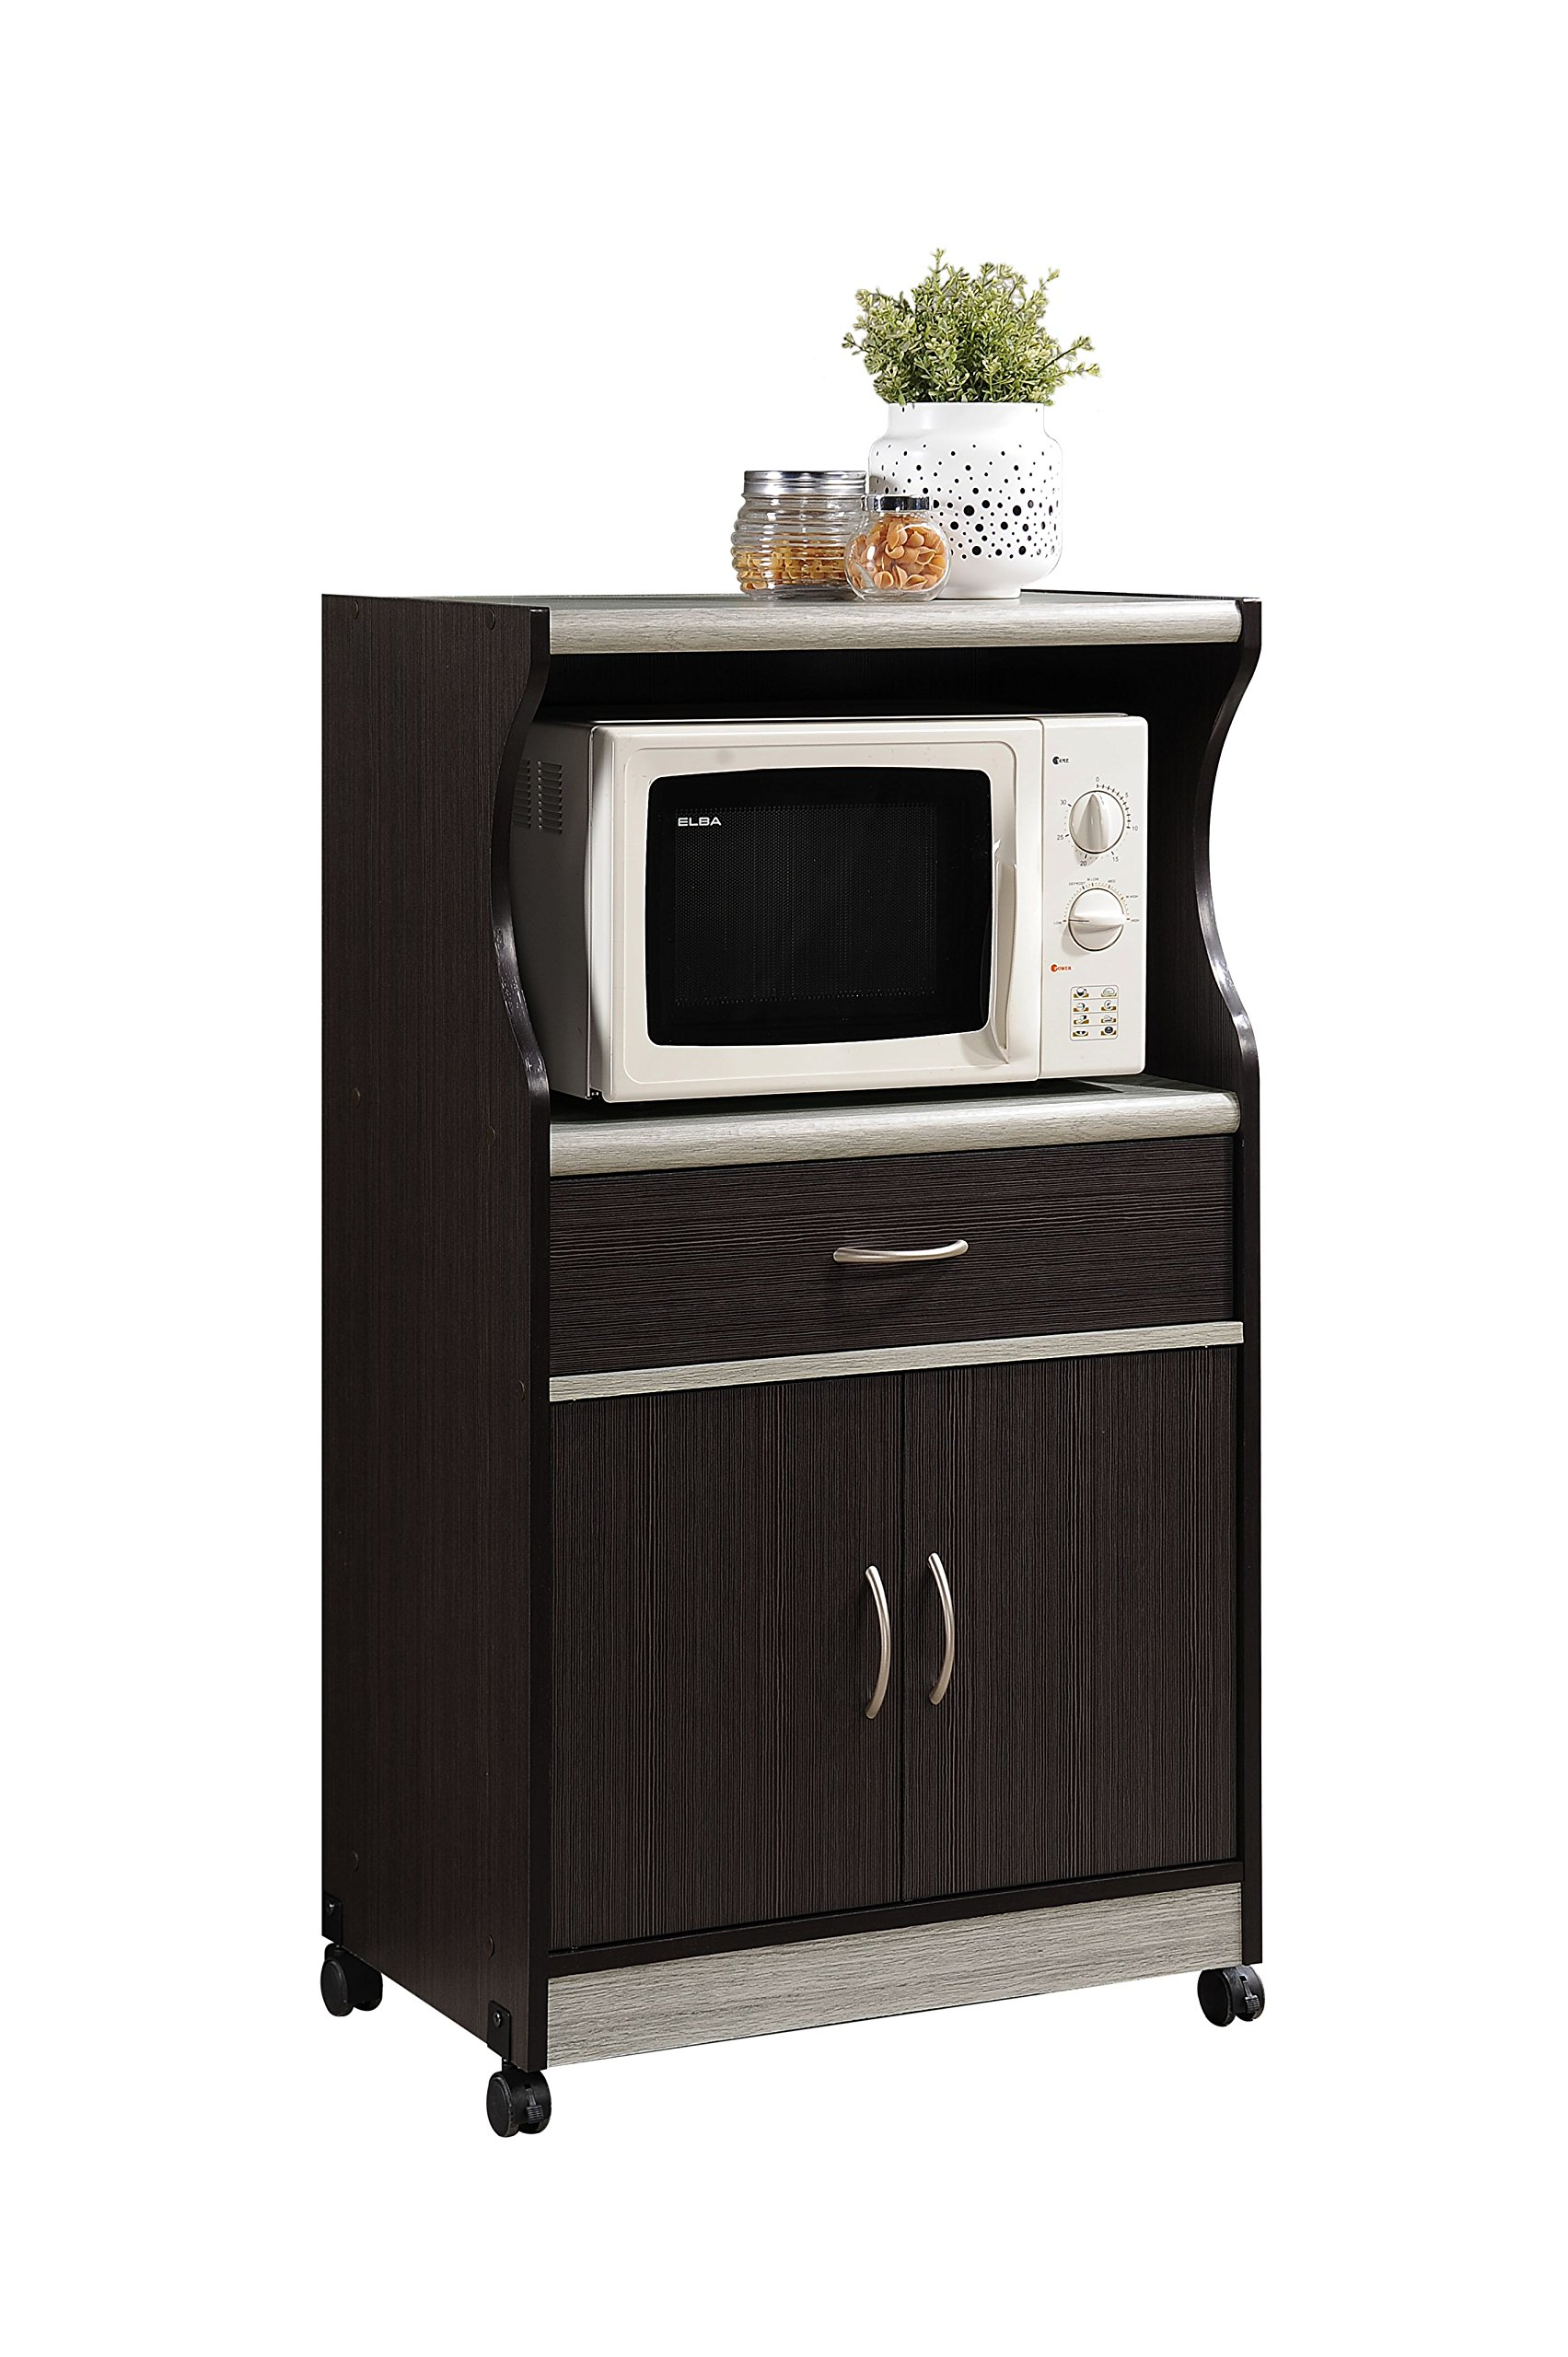 Hodedah Microwave Cart with One Drawer, Two Doors, and Shelf for Storage, Chocolate by HODEDAH IMPORT (Image #1)